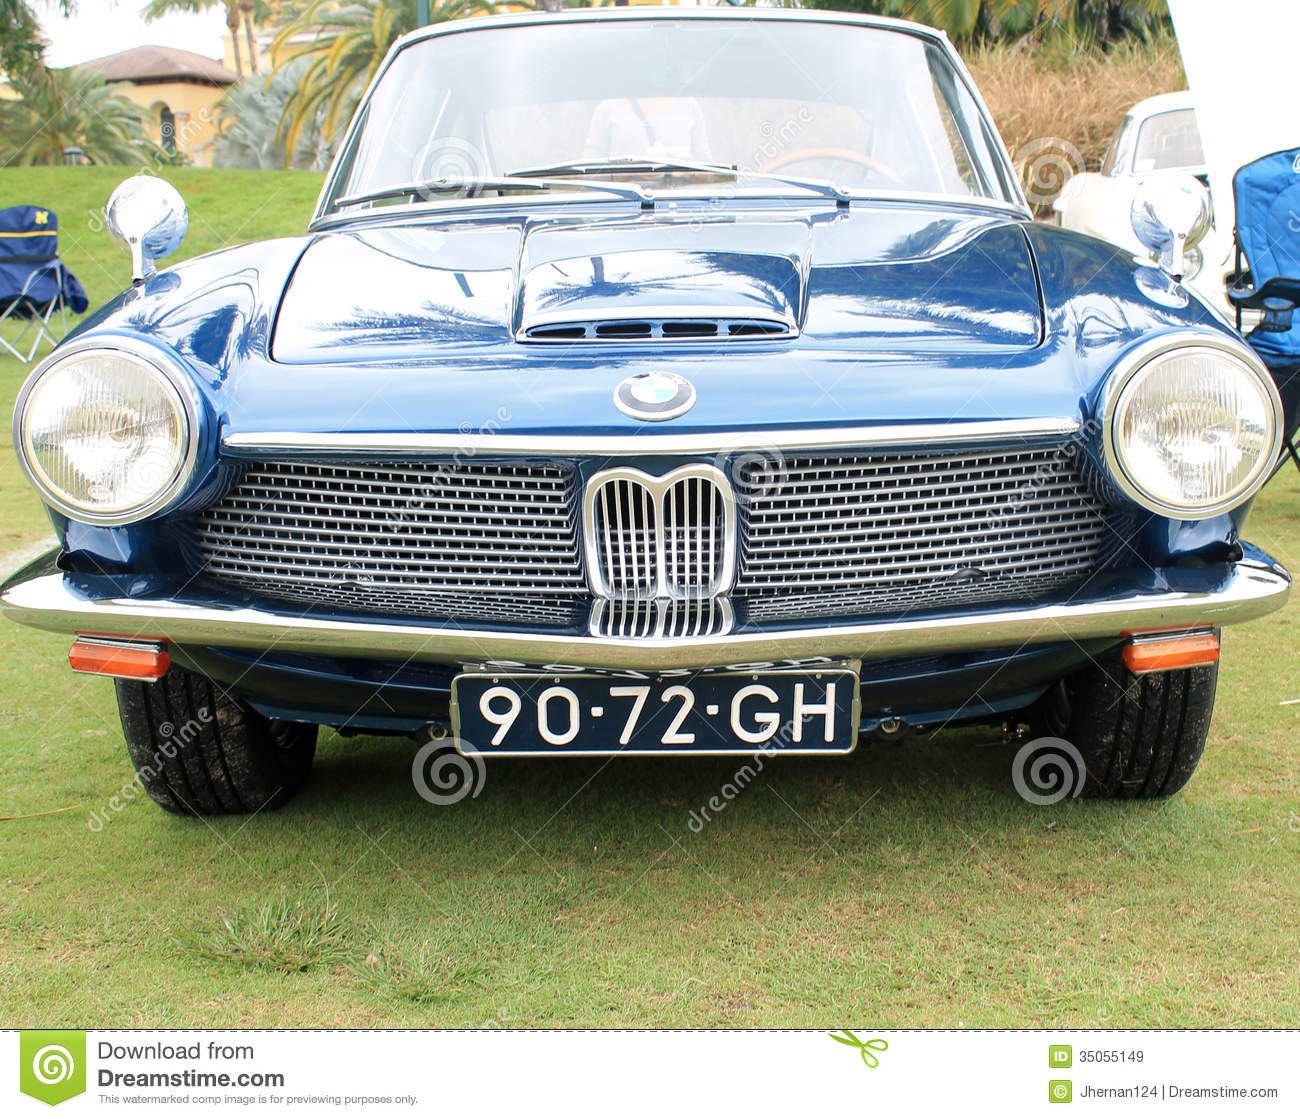 Vintage blue german sports car close up front view. 1967 bmw 1600 gt